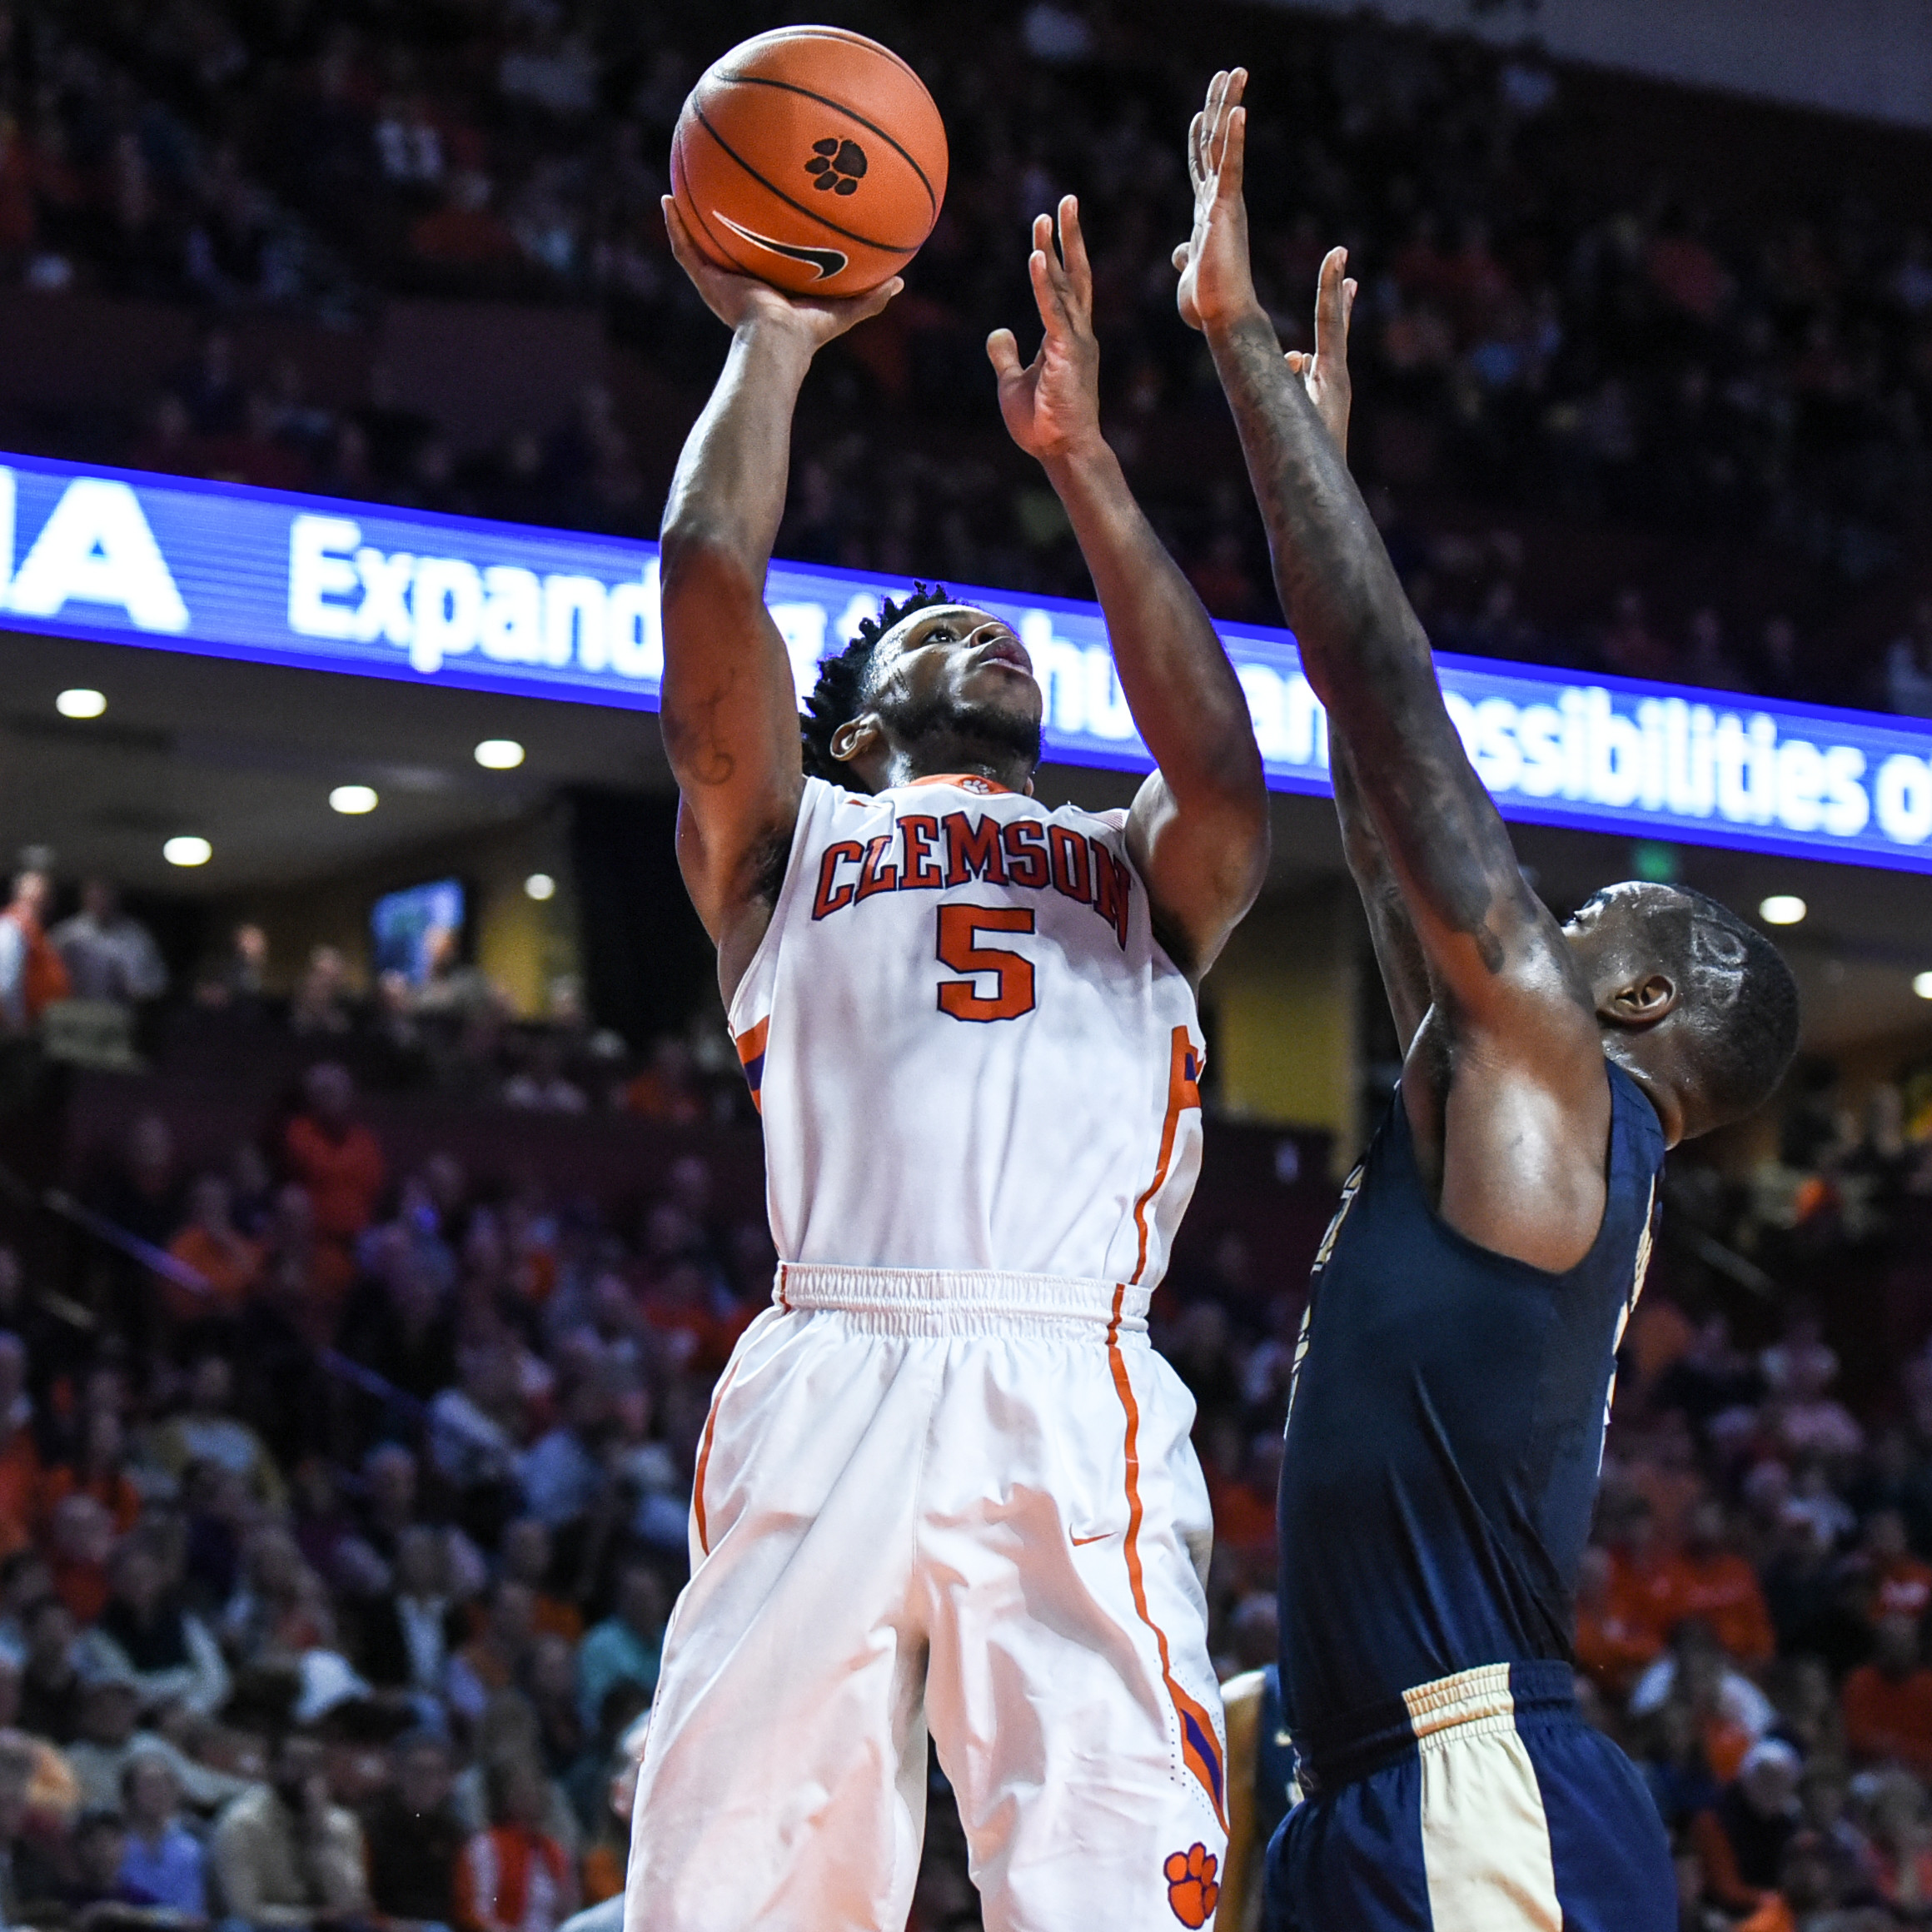 Tigers Fall at Florida State, 76-65